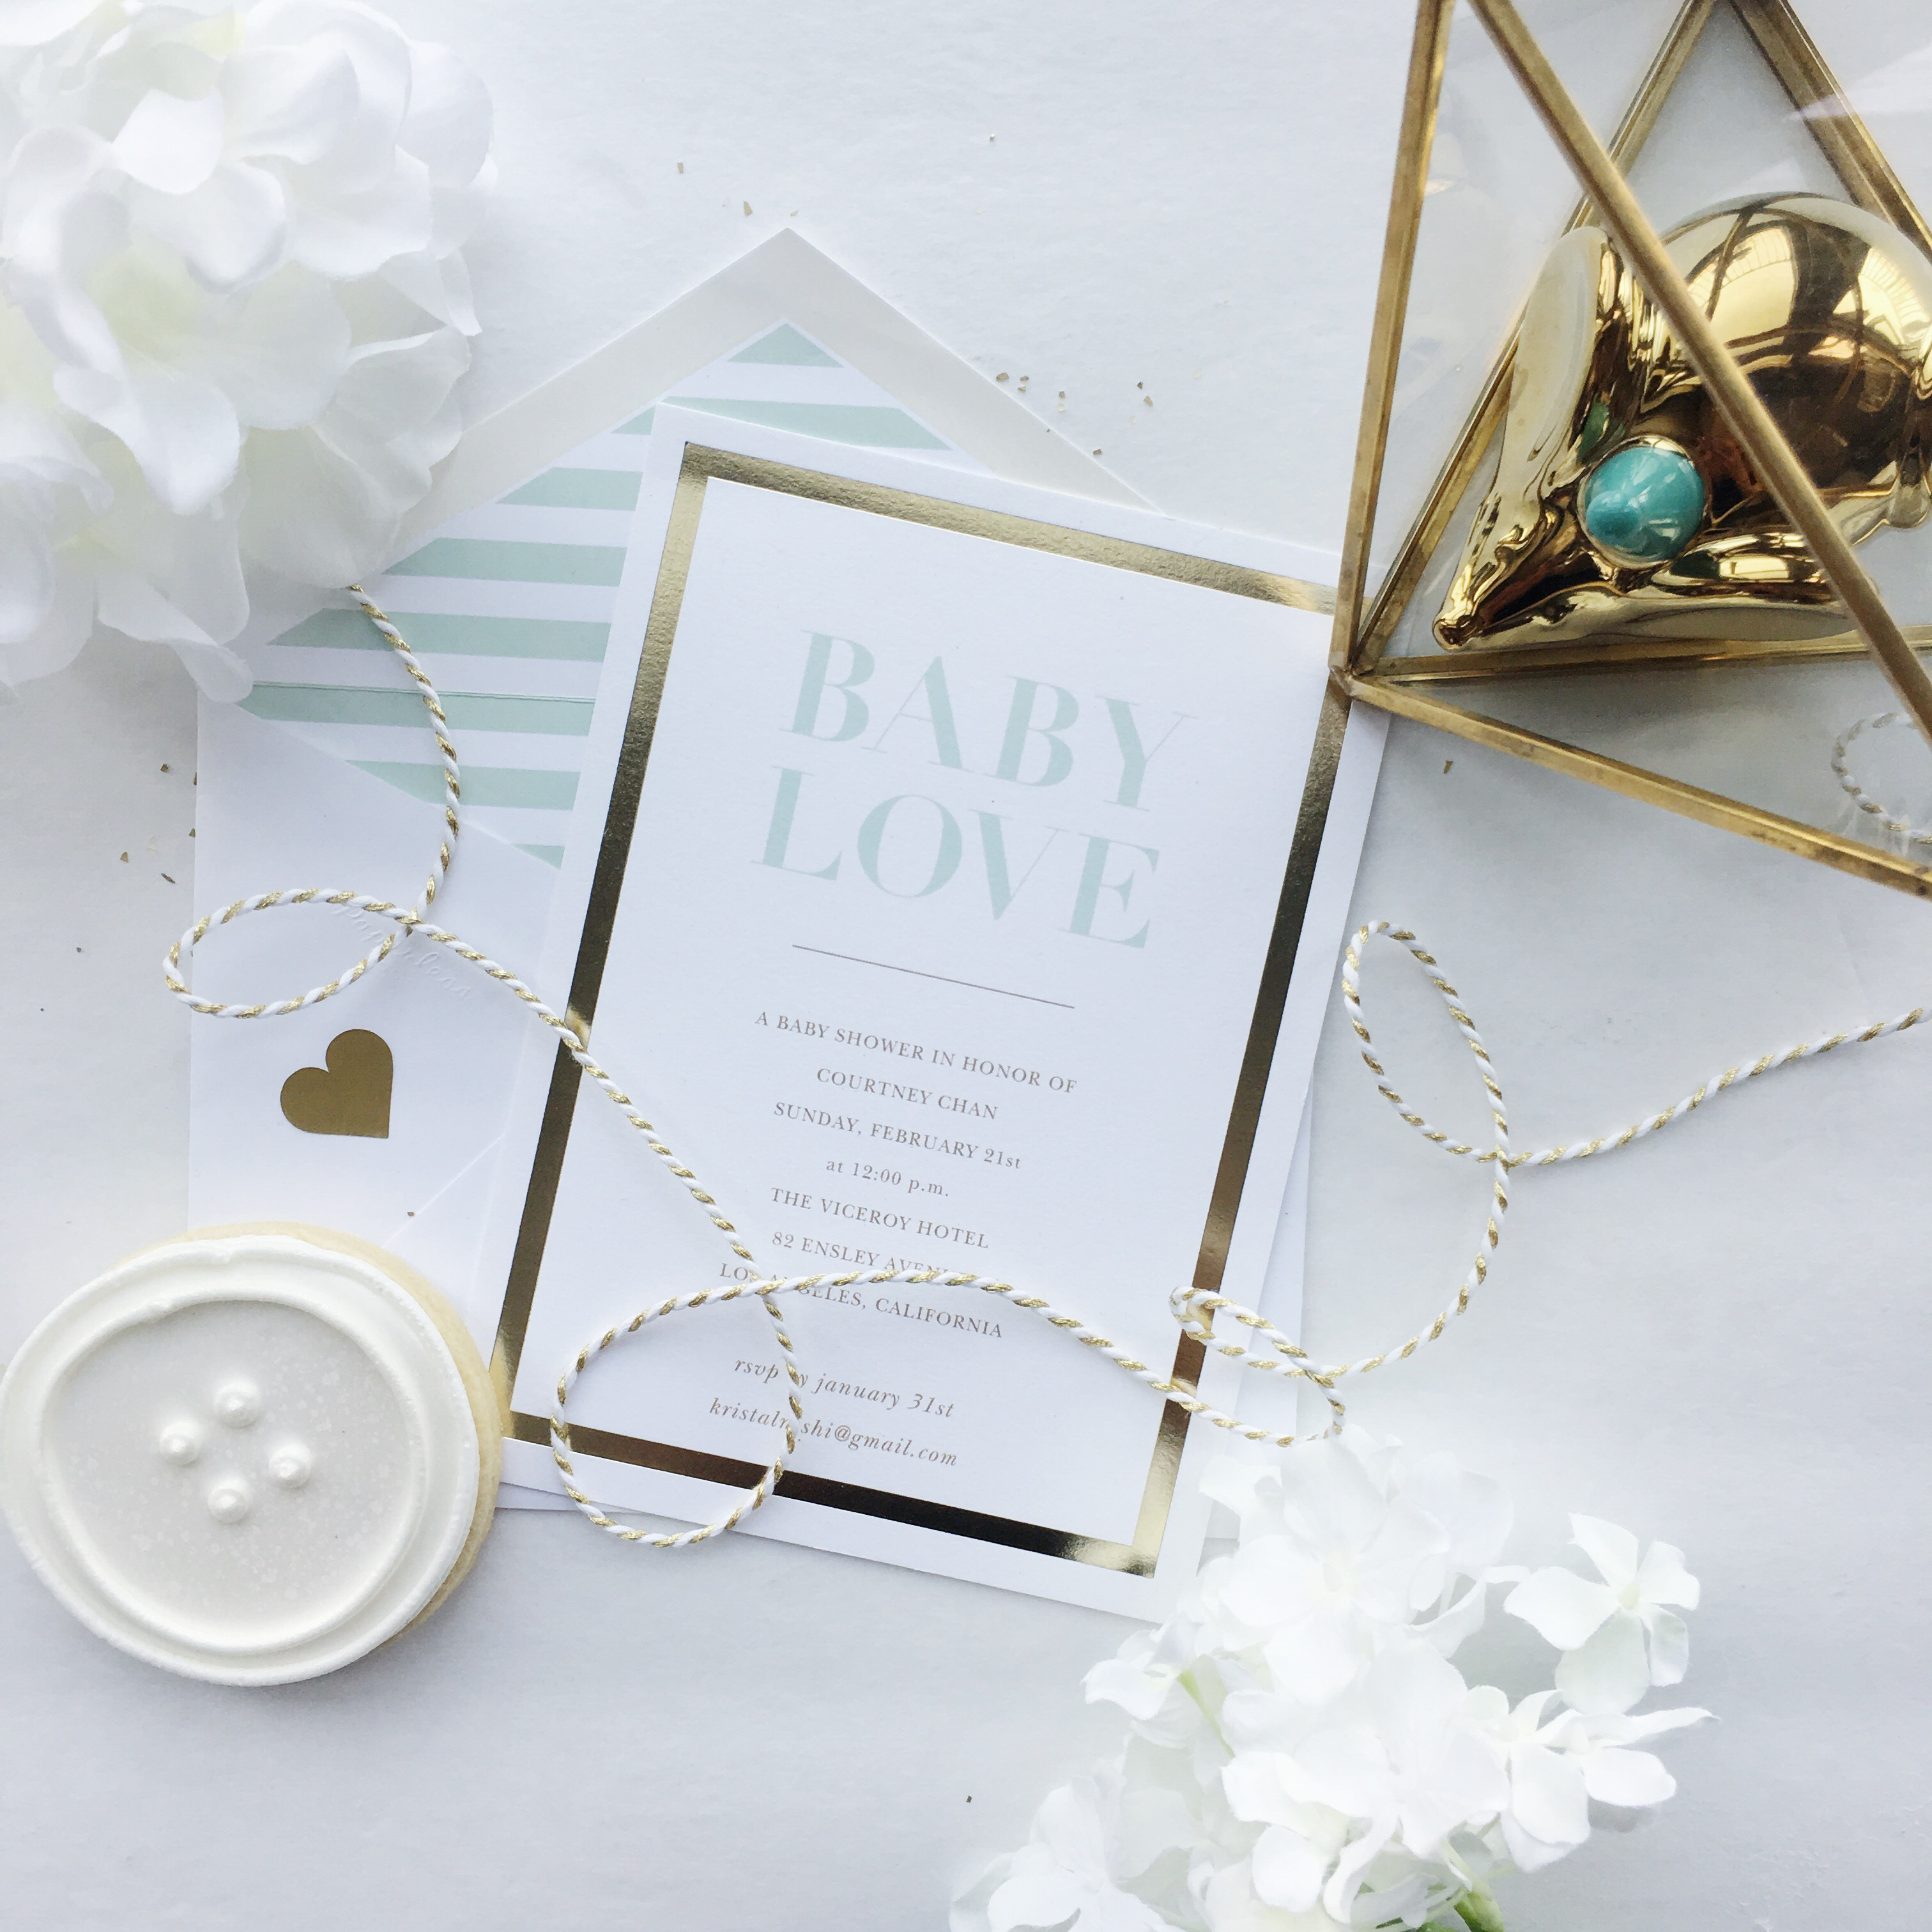 Baby Shower Love | Sparkles for All